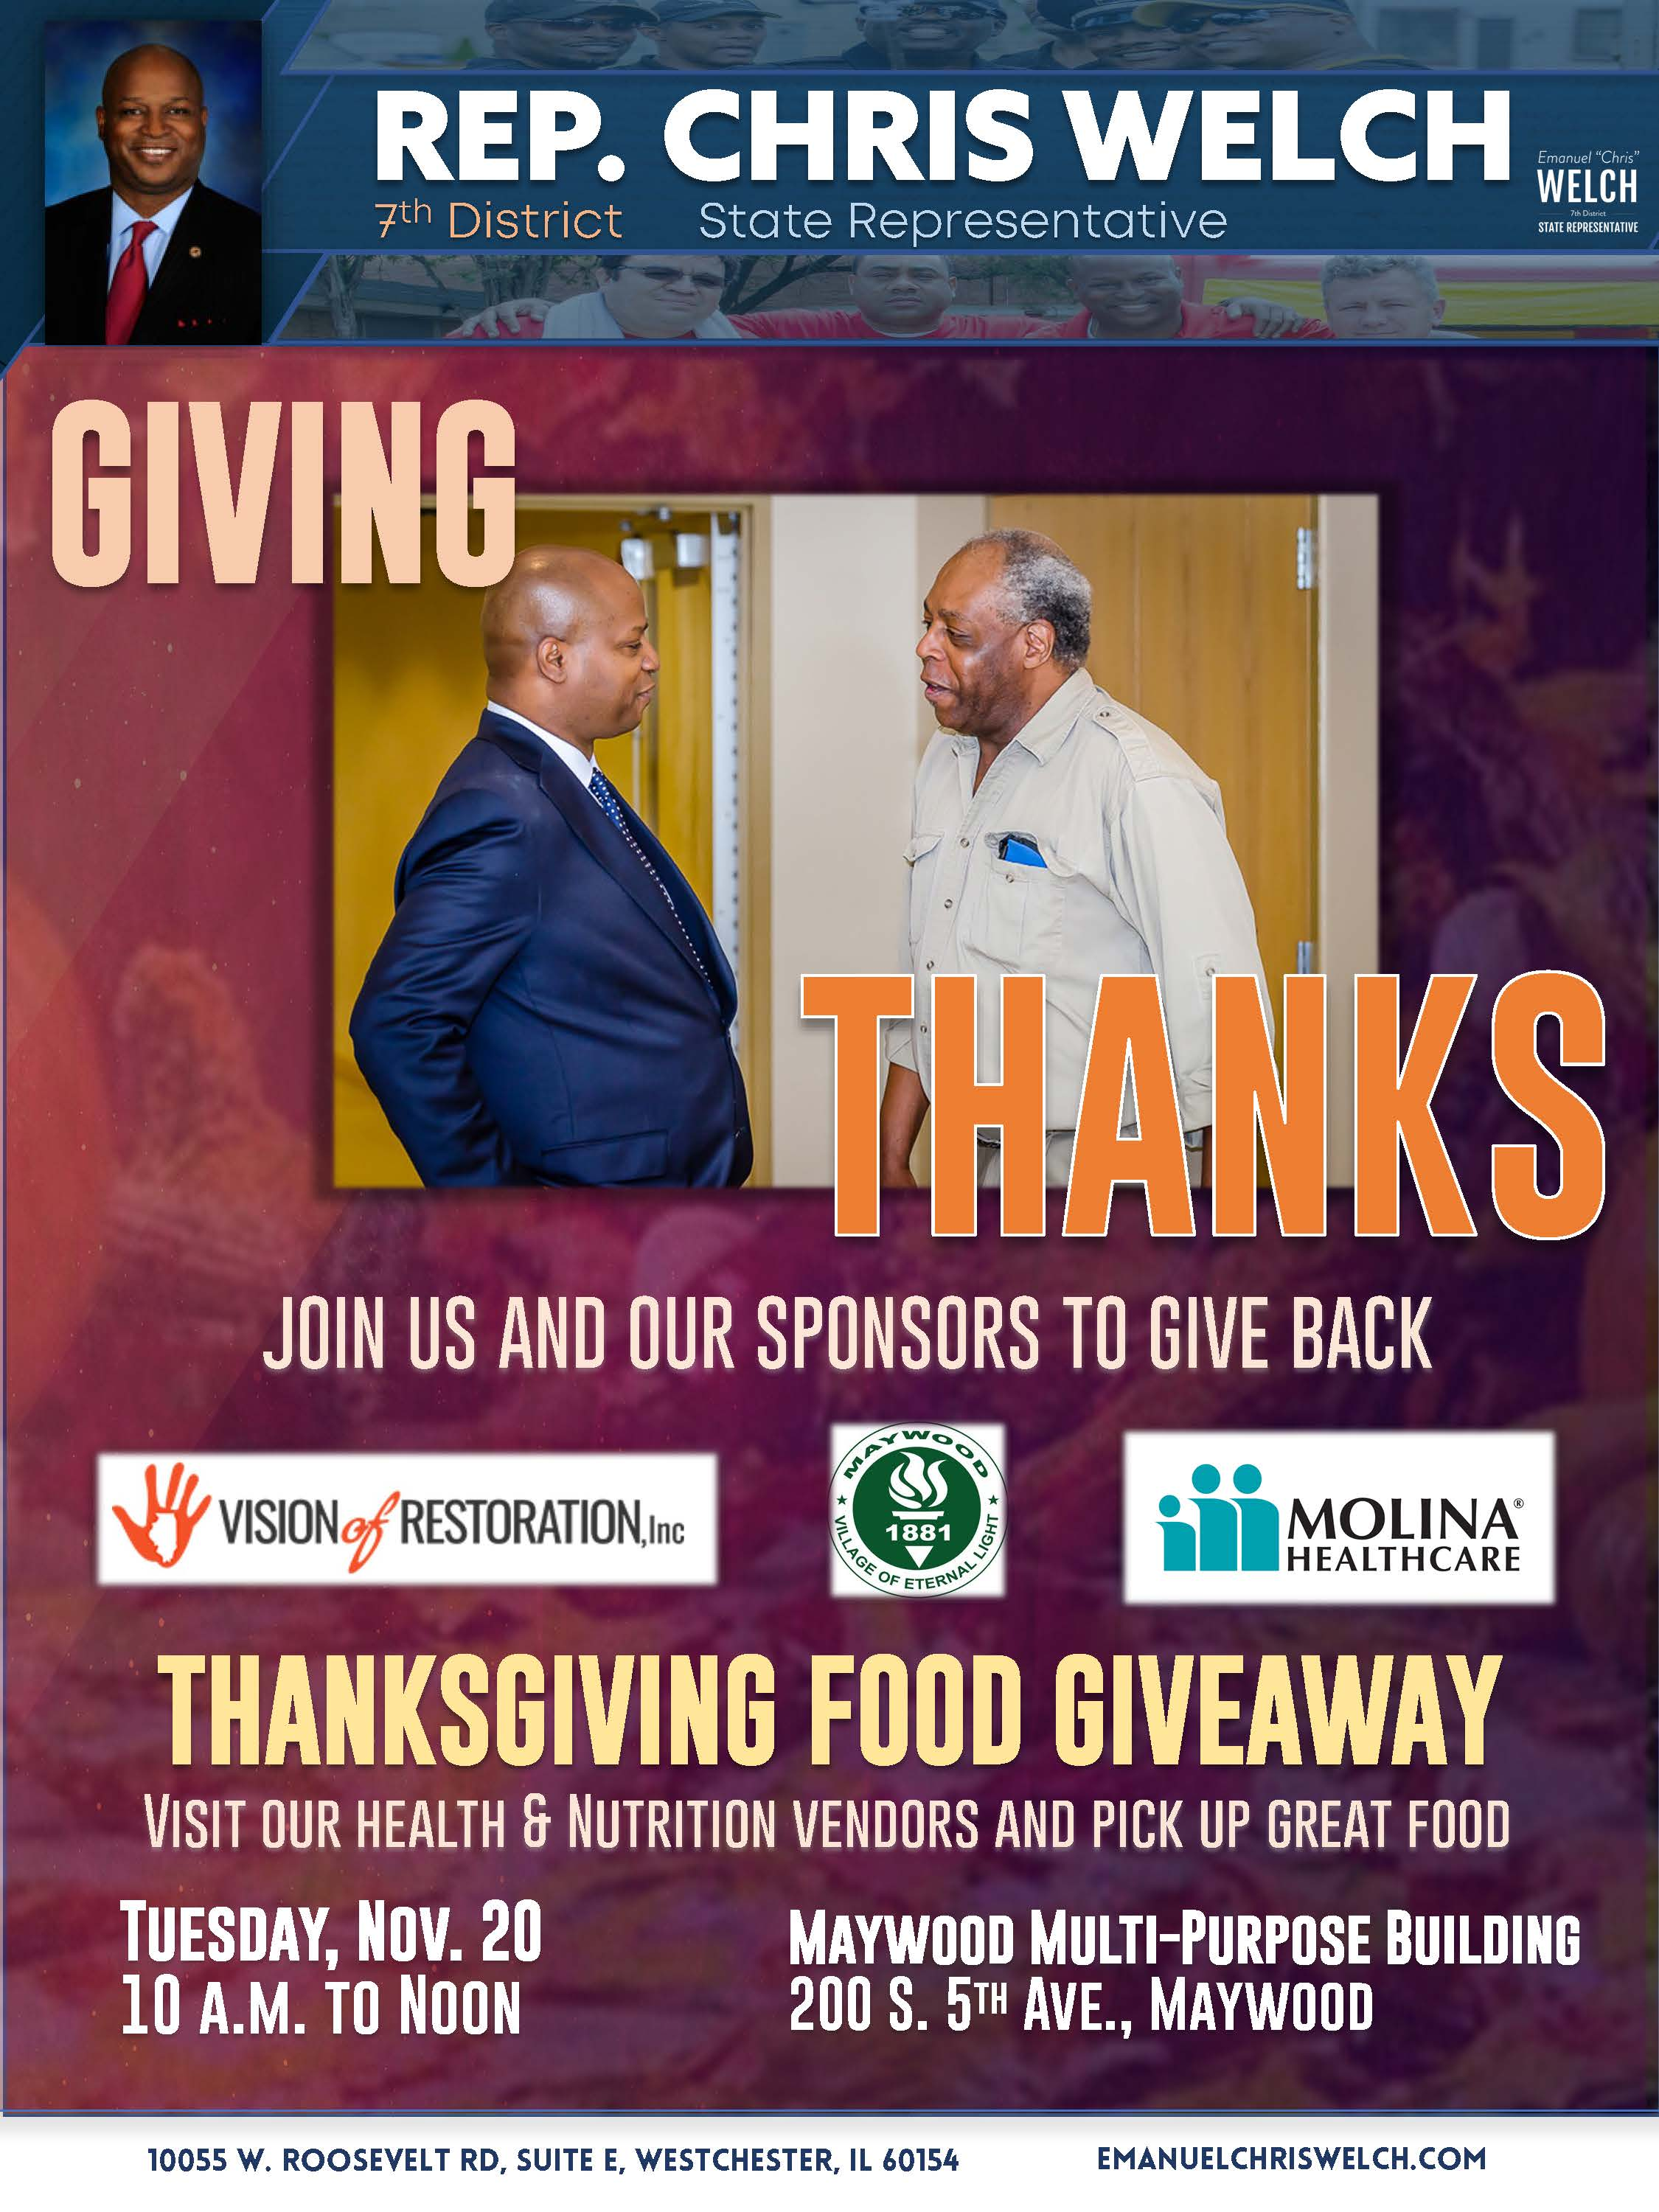 Rep. Welch Thanksgiving giveaway flyer -- October 2018.jpg